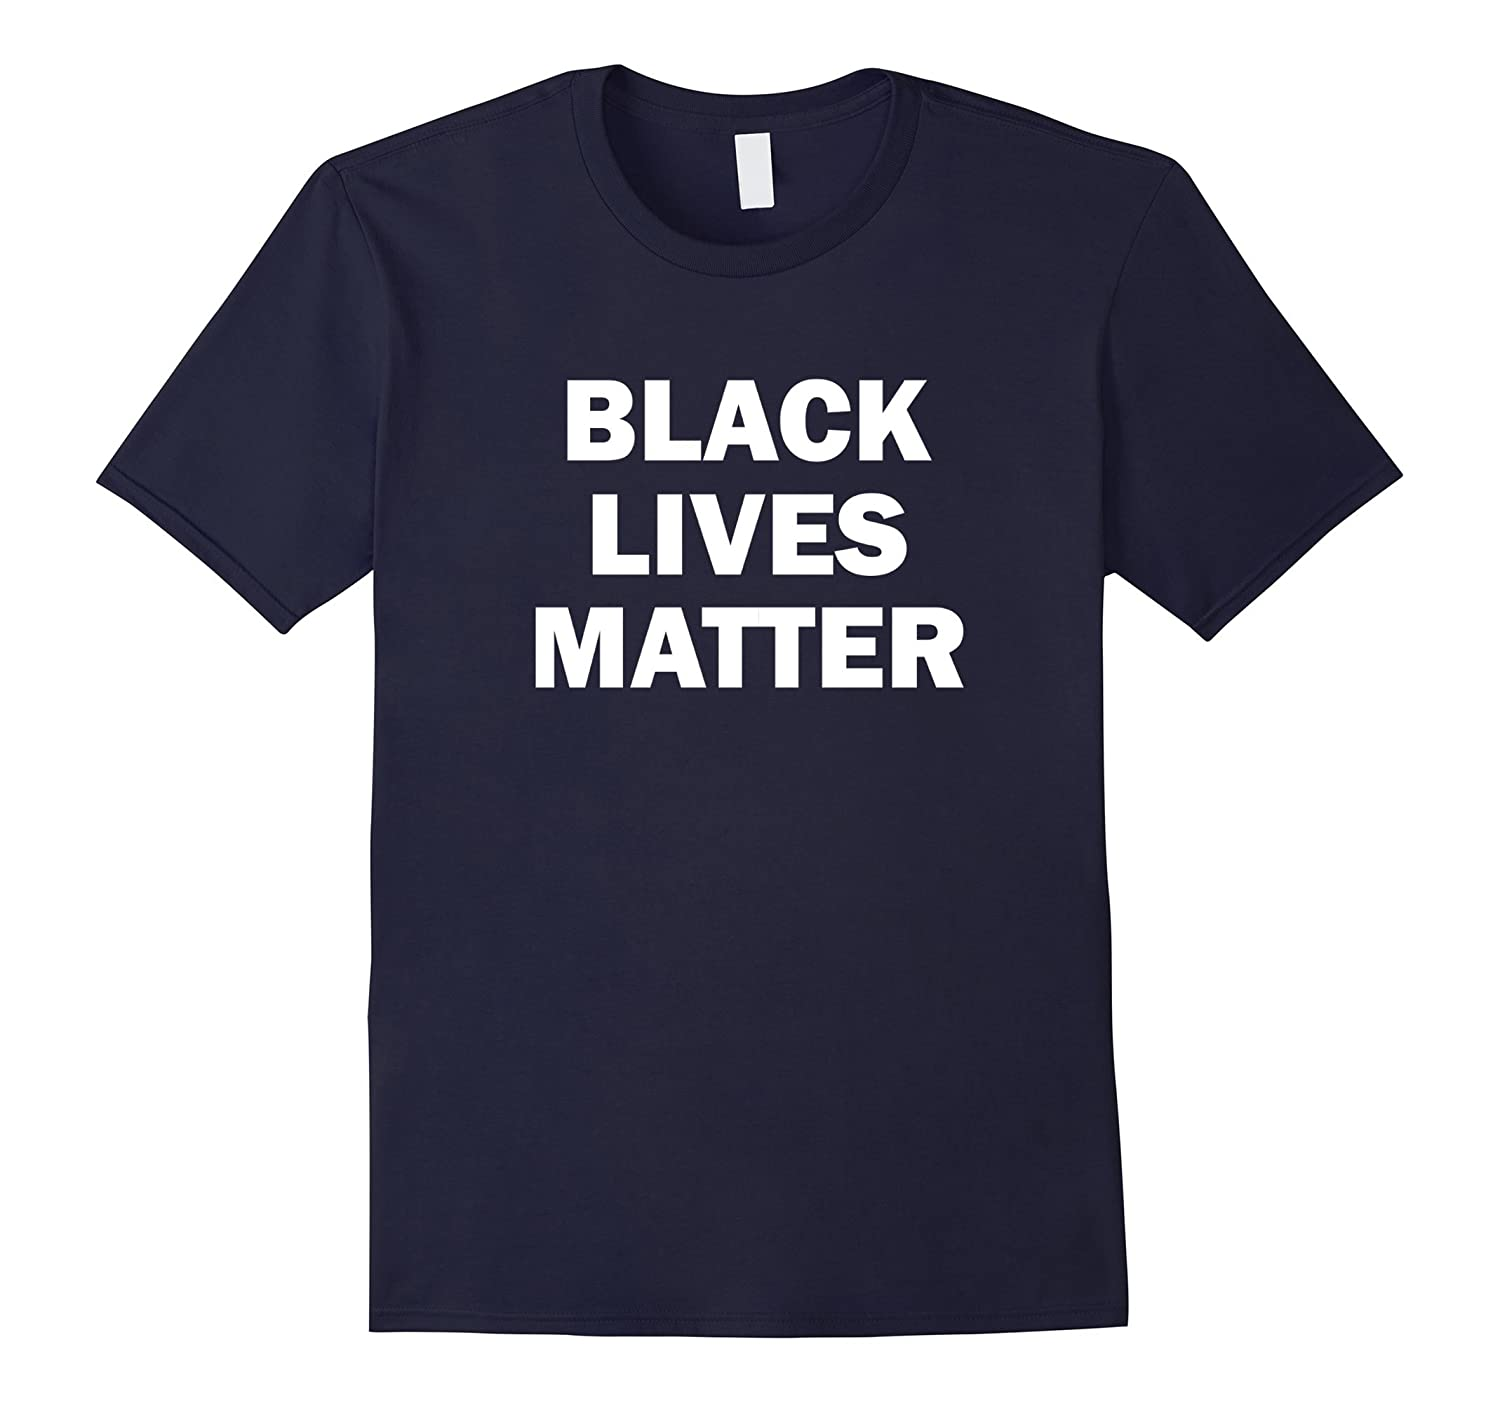 Black Lives Matter T-Shirt - Men's, Women's & Kids' Sizes-FL